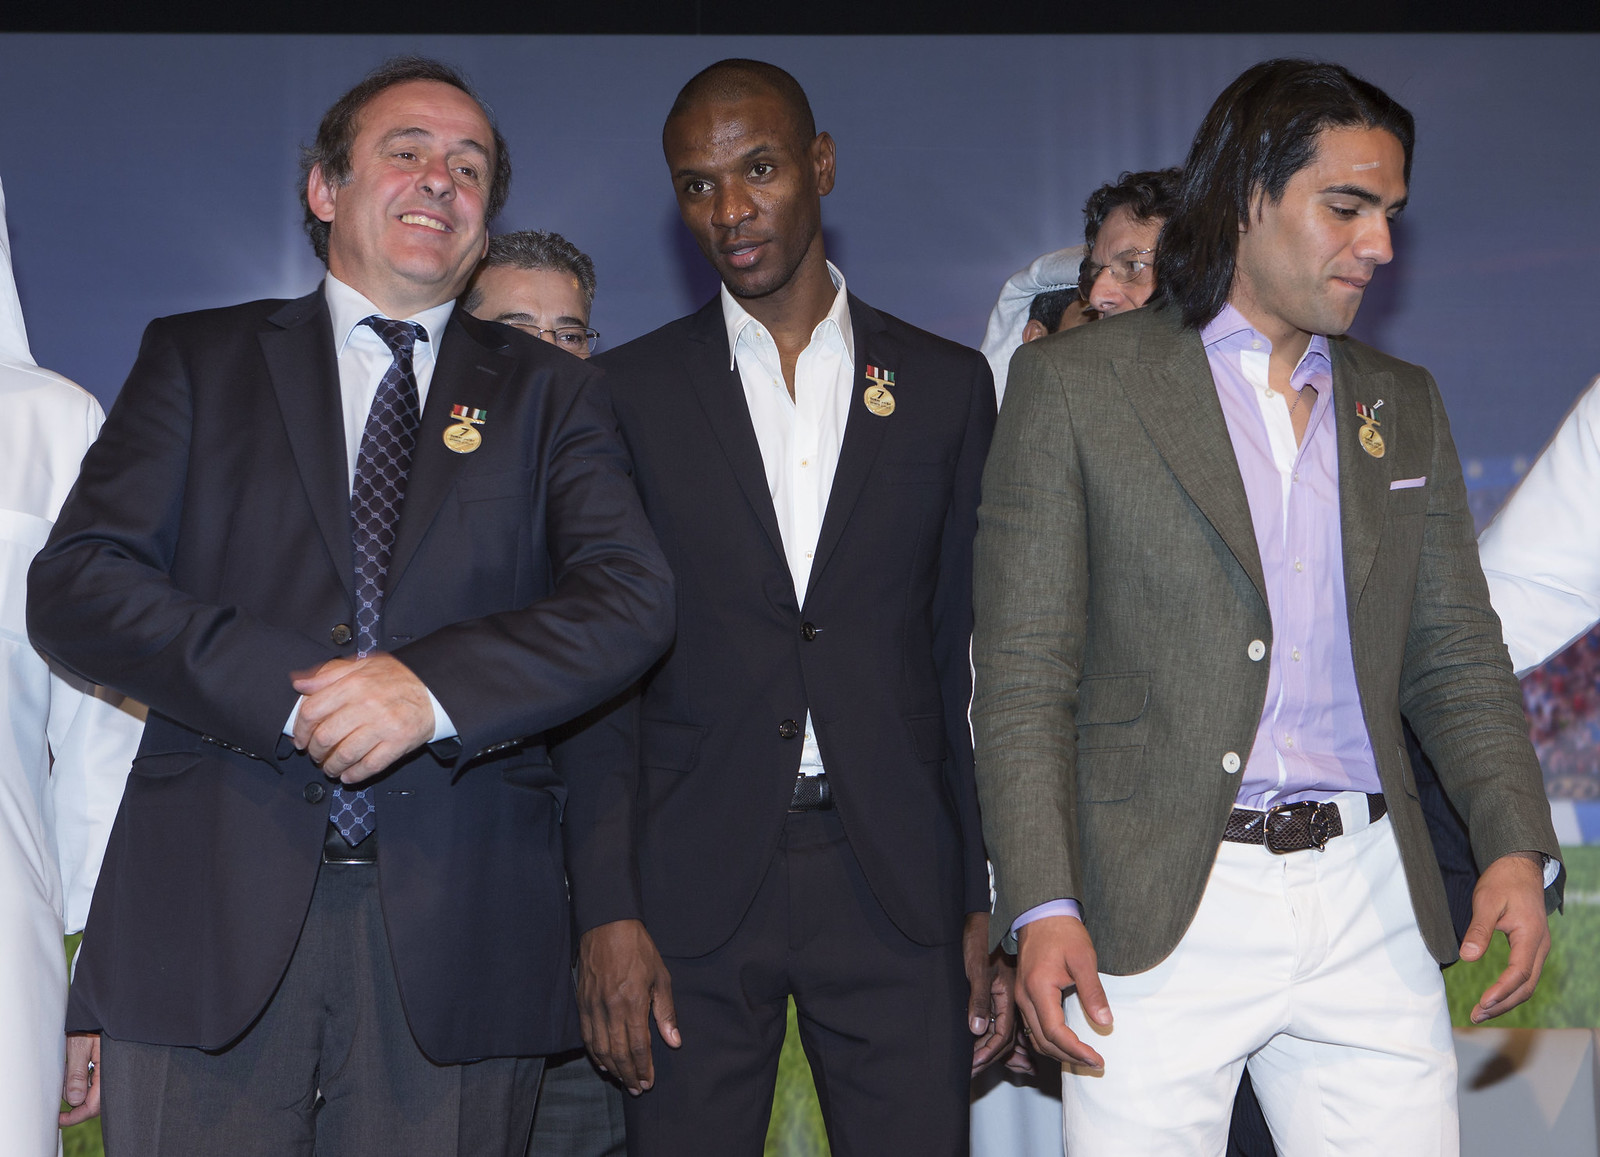 Michel Platini, Eric Abidal and Radamel Falcao